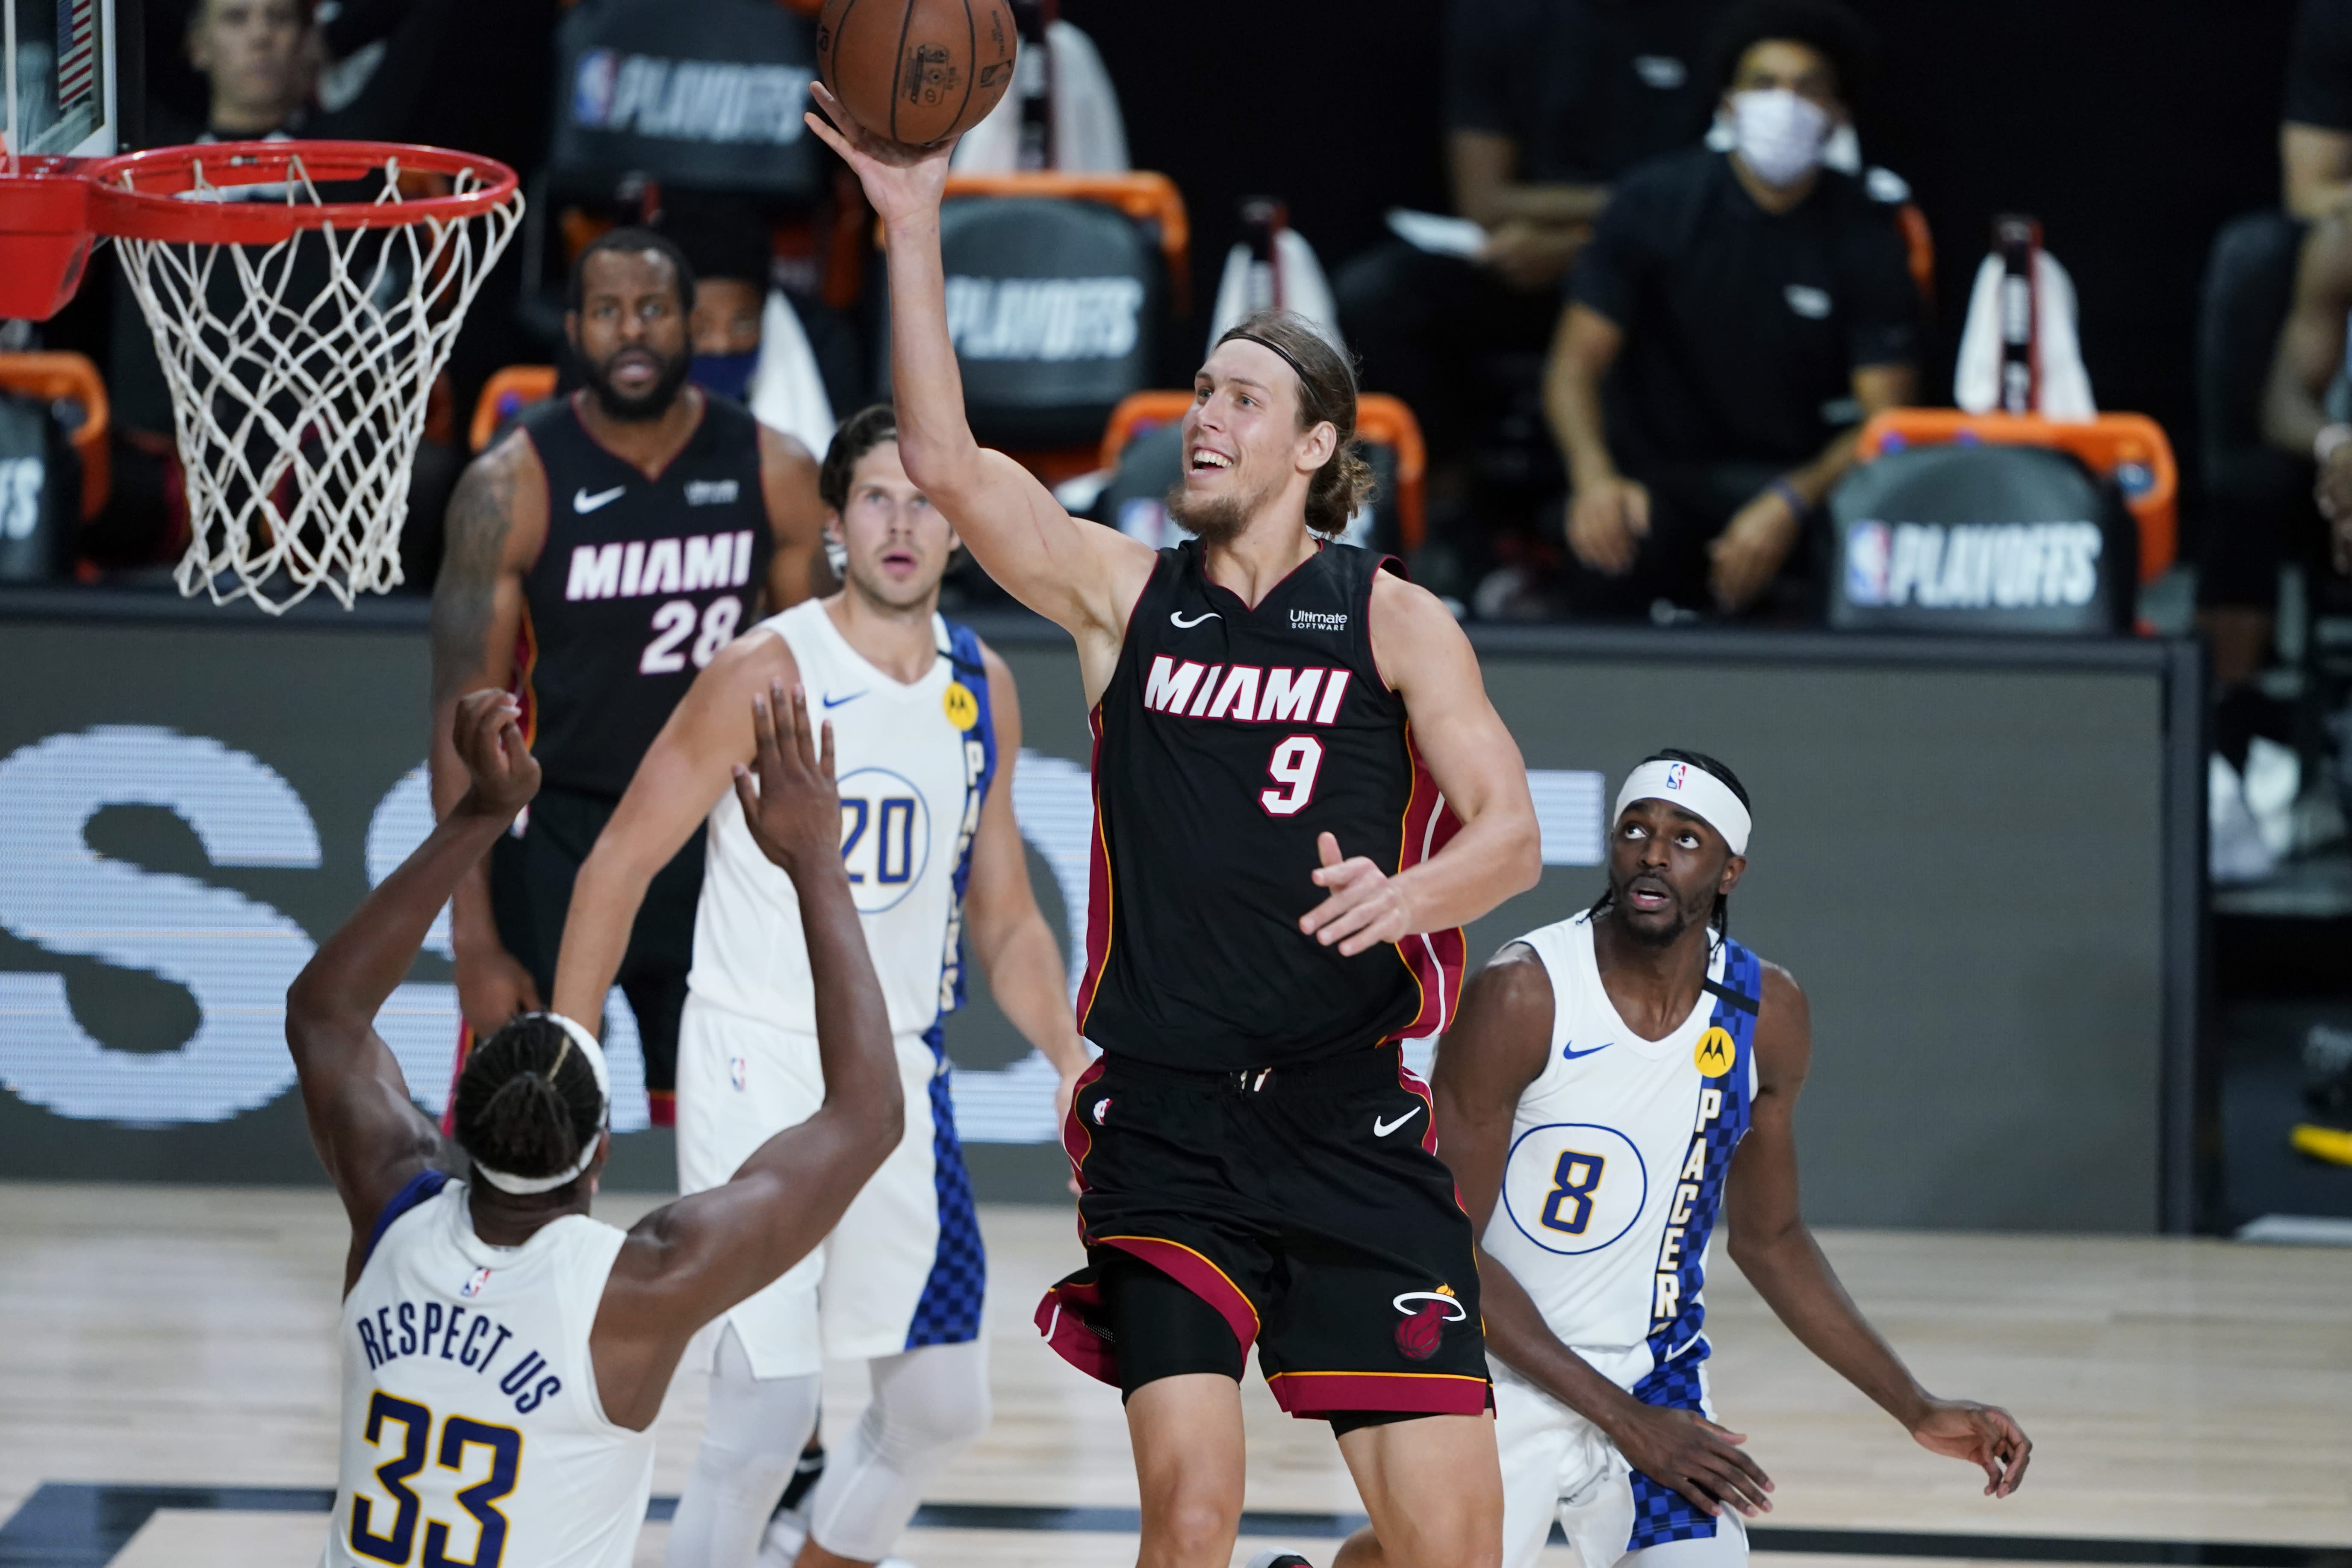 Miami Heat forward Kelly Olynyk (9) shoots over Indiana Pacers center Myles Turner (33) during the second half of an NBA basketball first round playoff game, Saturday, Aug. 22, 2020, in Lake Buena Vista, Fla. (AP Photo/Ashley Landis, Pool)